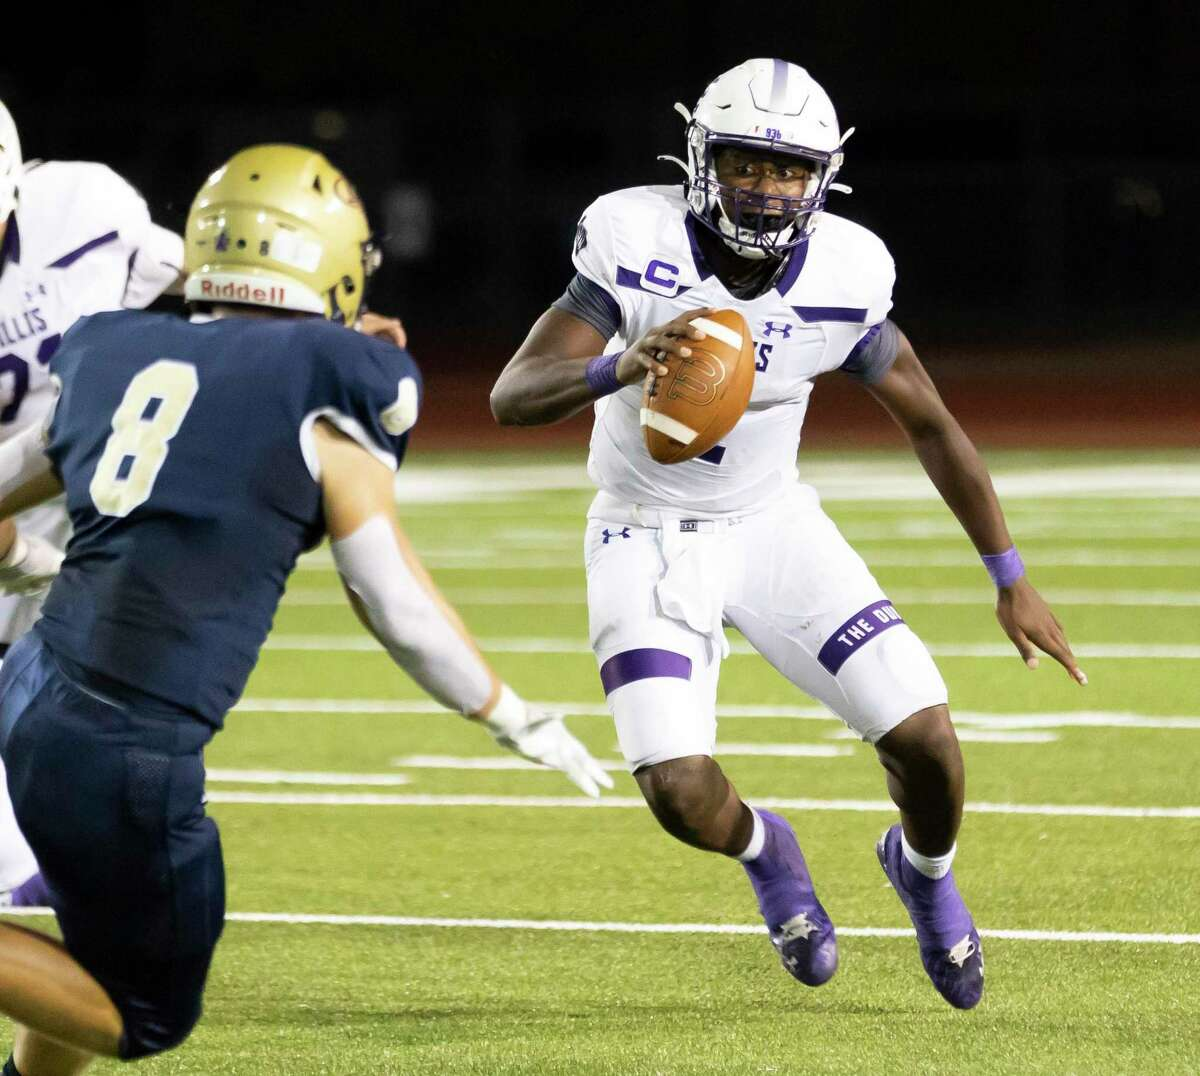 Willis quarterback Derek Lagway (2) looks for an opening to run the ball passed Klein Collins Reagan Schluter (8) during the third quarter of a non-district football game at Klein Memorial Stadium, Thursday, Sept. 23, 2021, in Spring.